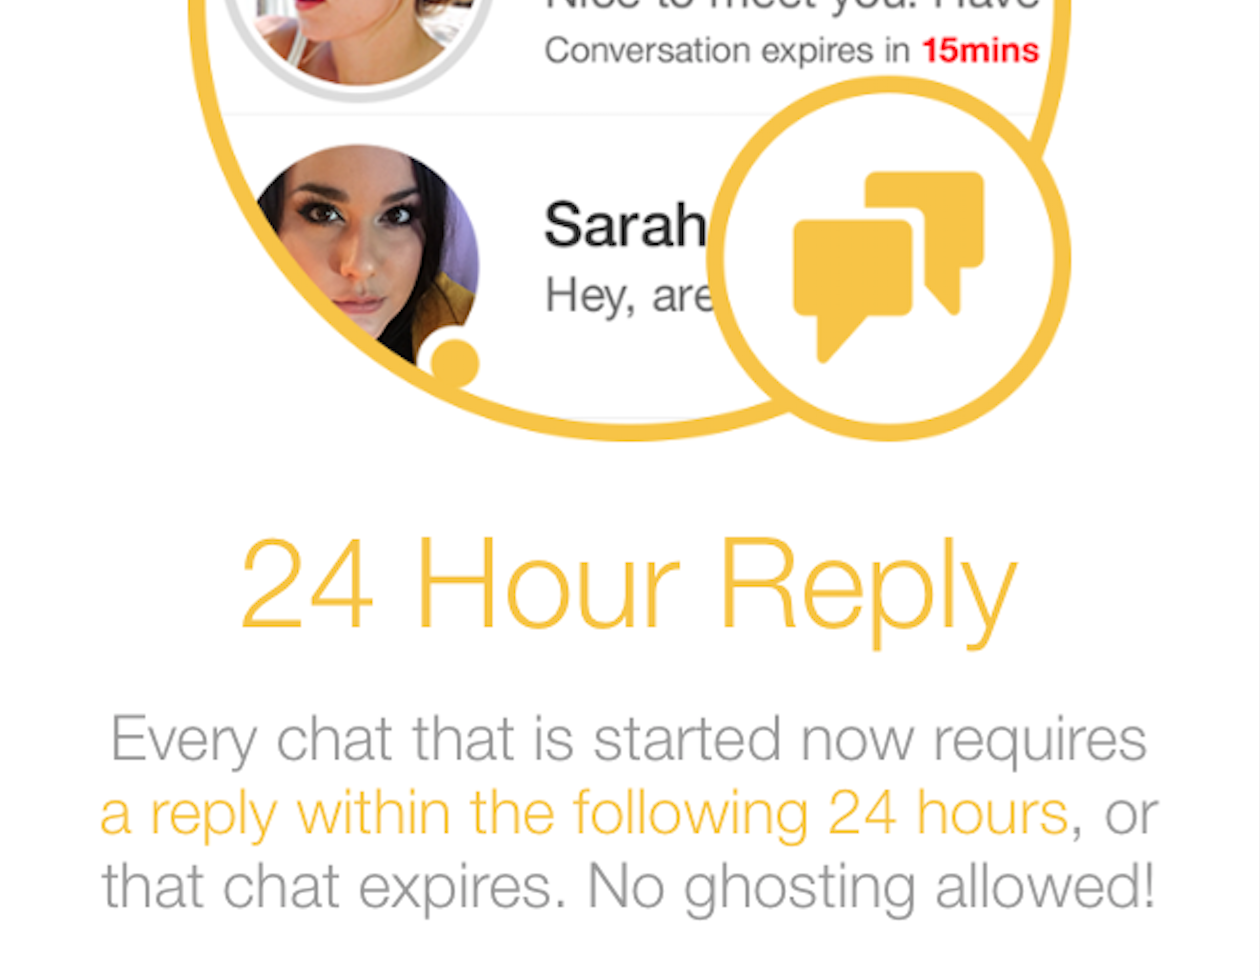 Bumble Adds 24 Hour Time Limit To Replies, To Curb 'Ghosting' Trend